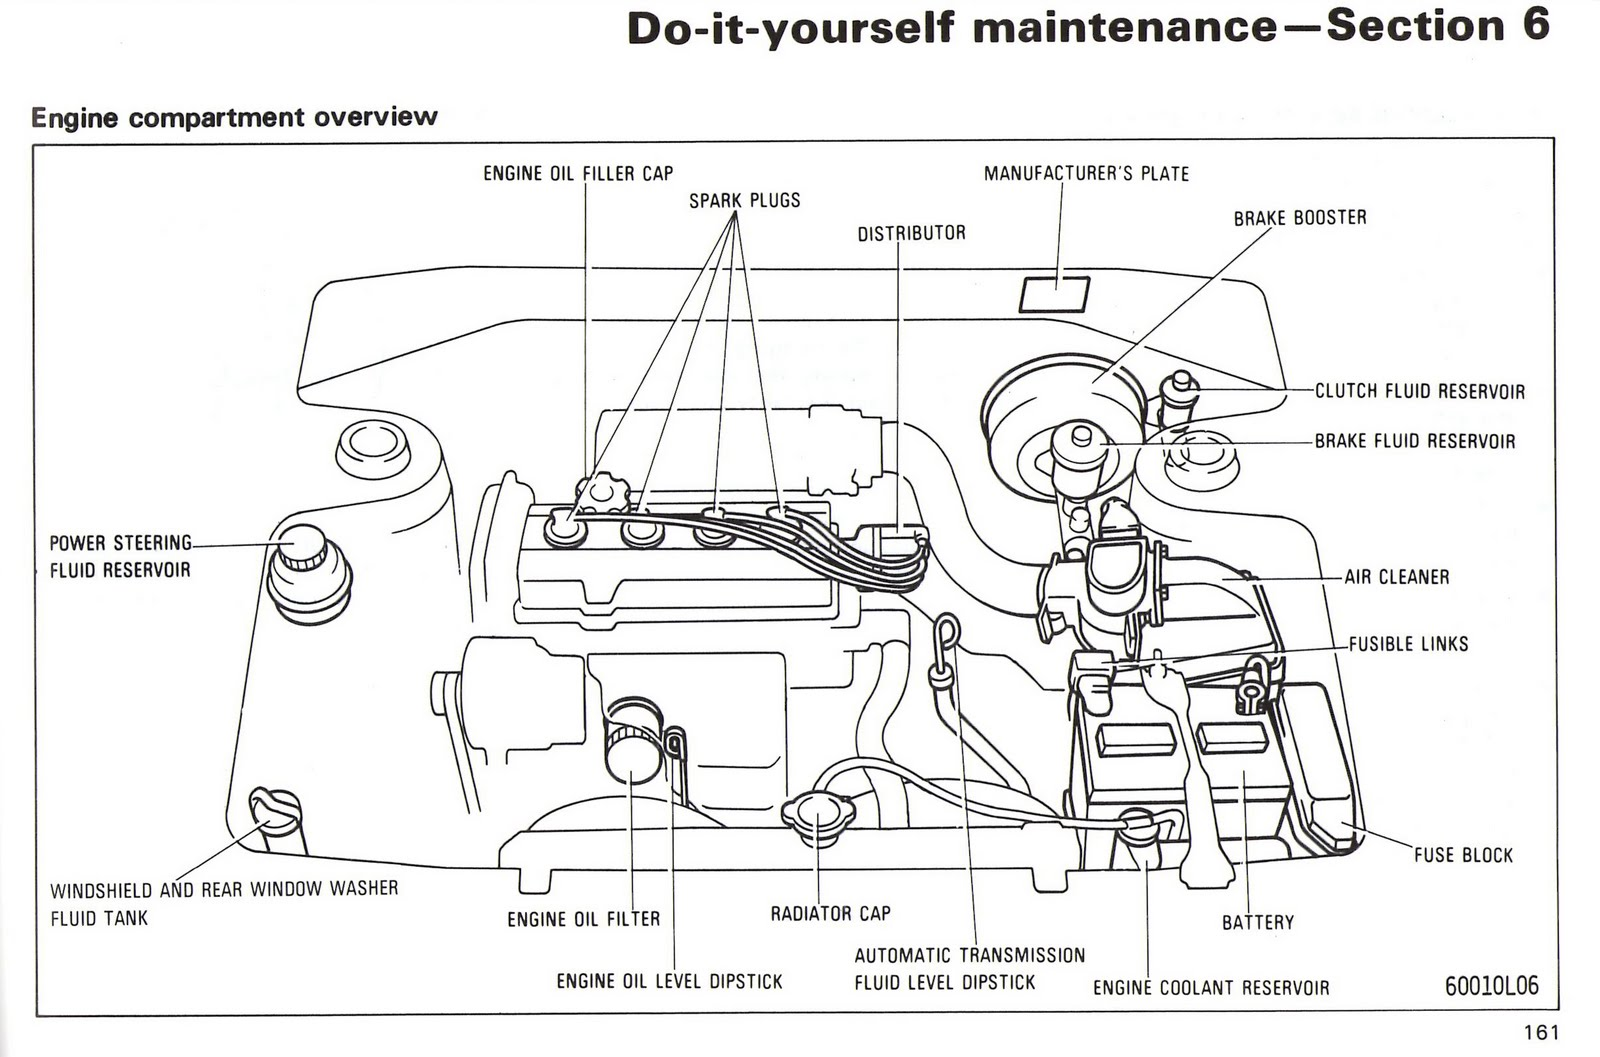 repair manuals toyota echo manual html